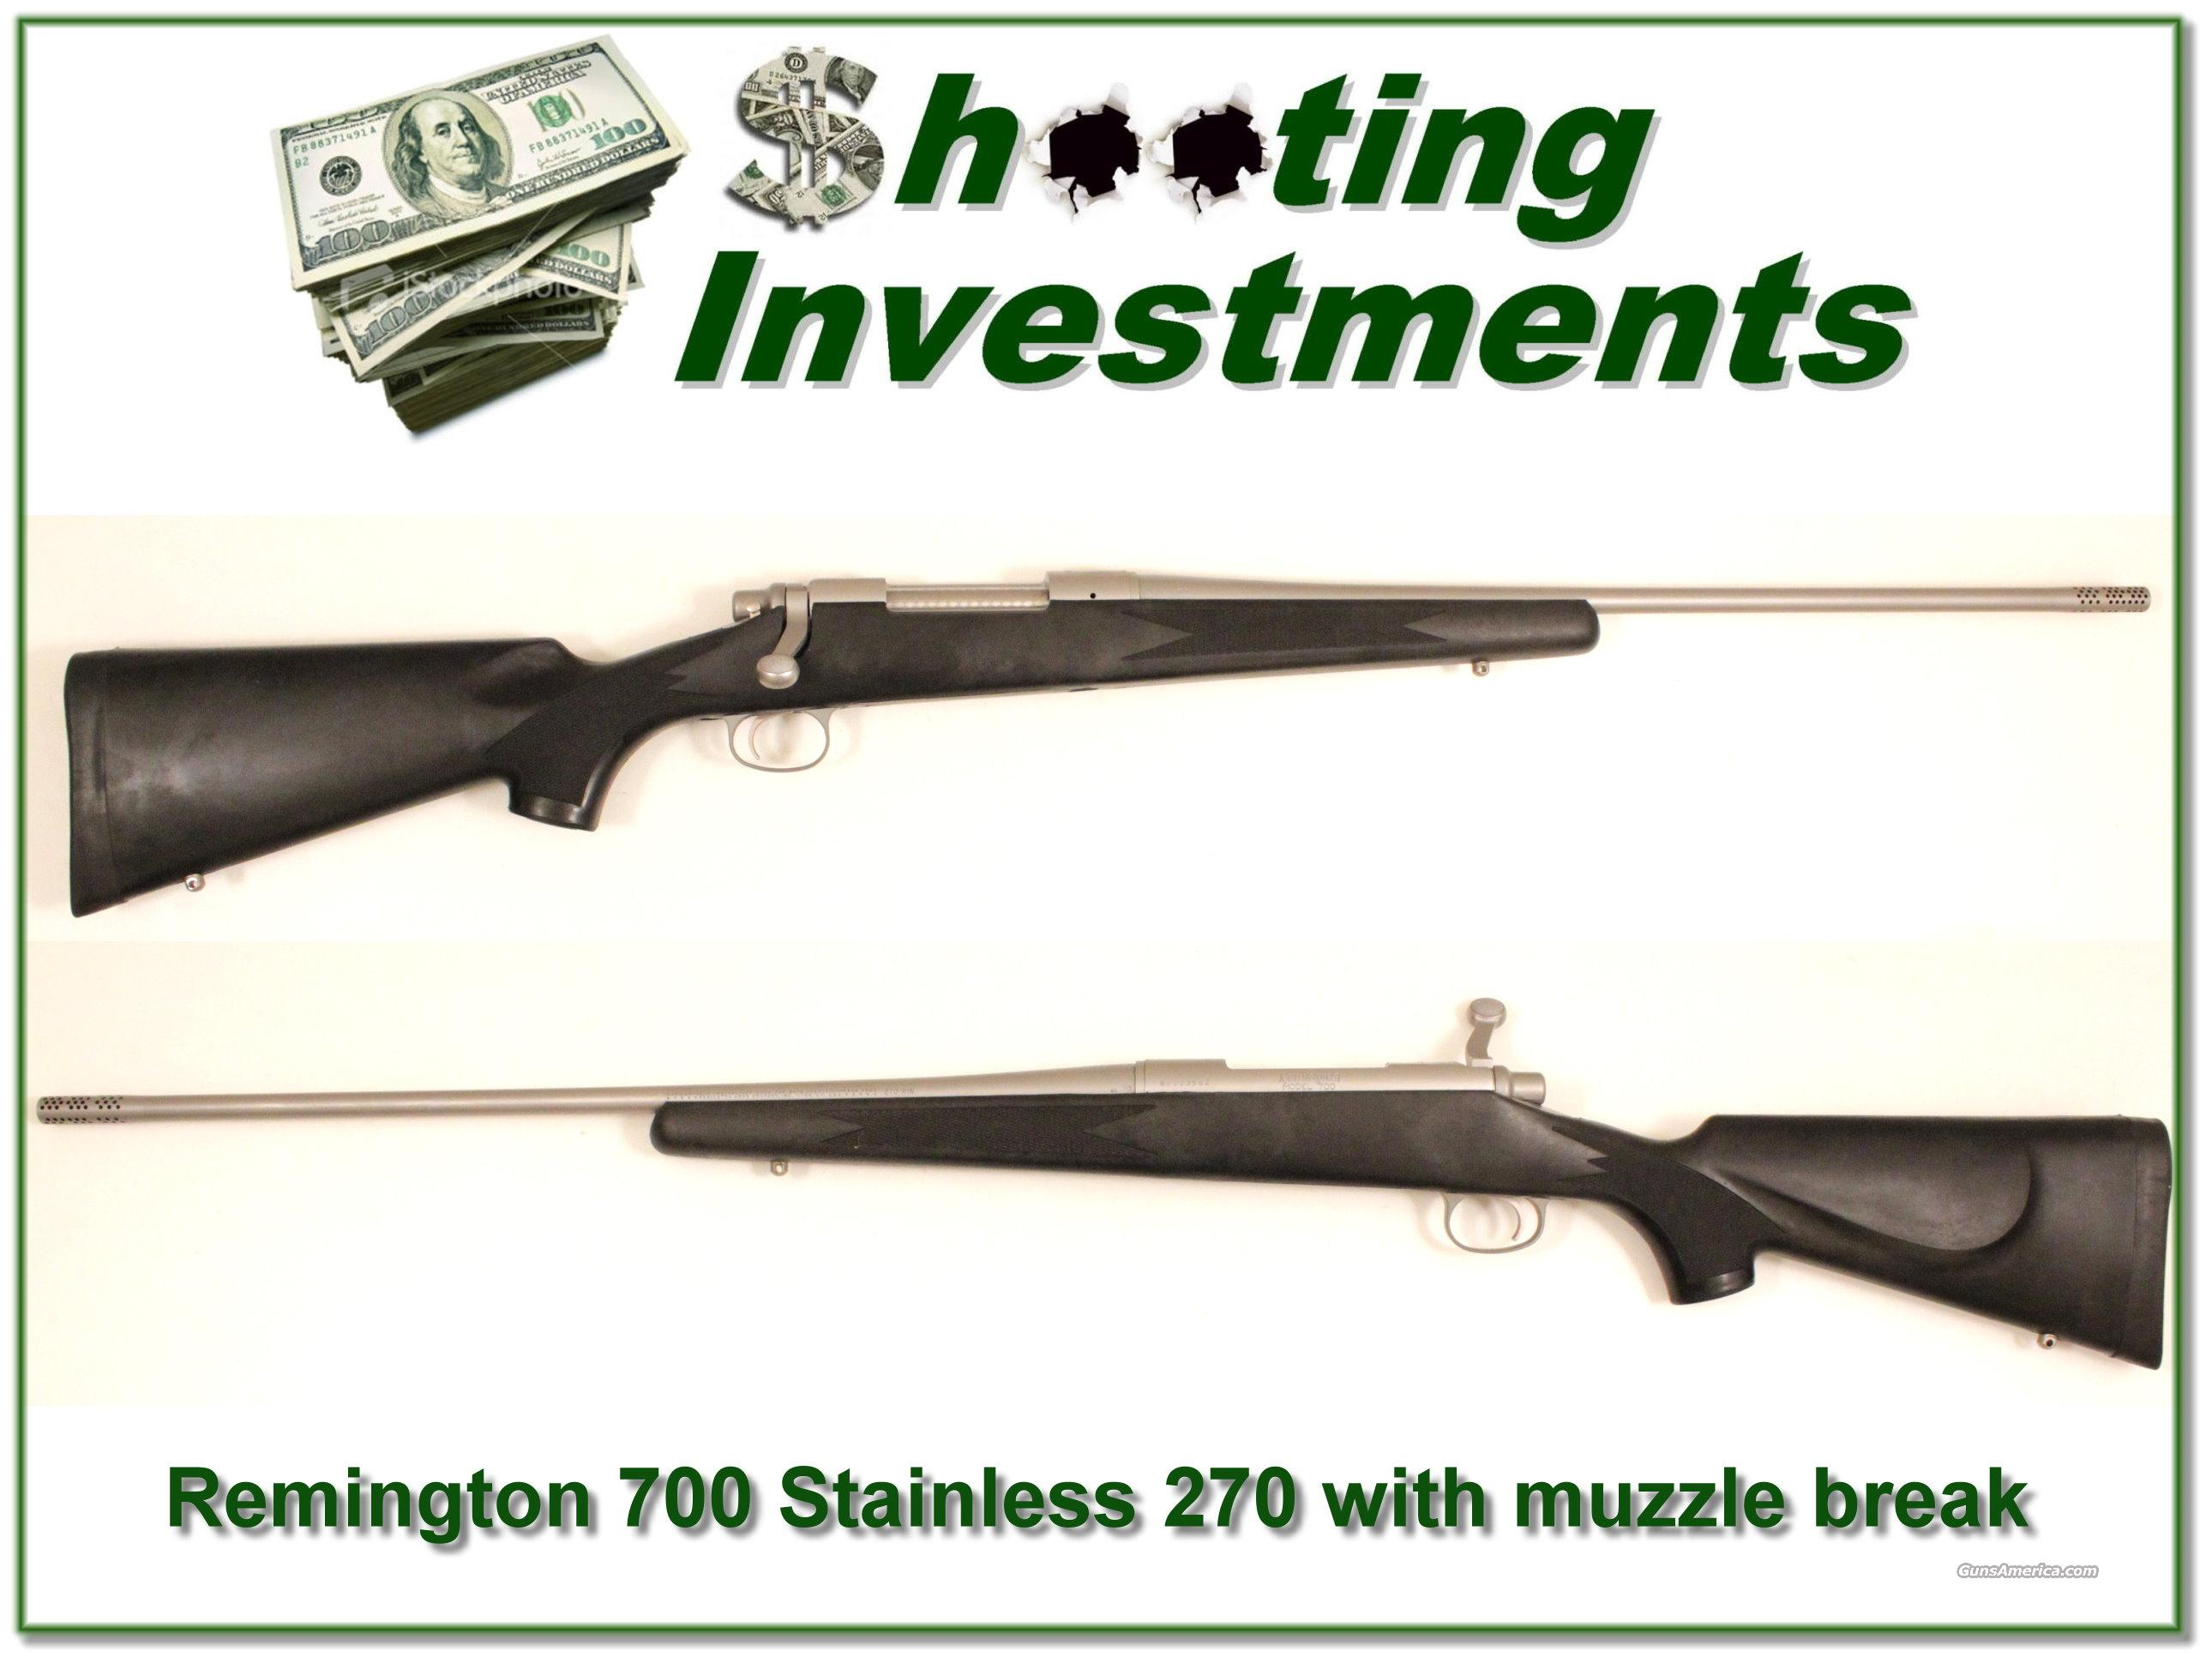 Remington 700 Stainless 270 light weight with muzzle break  Guns > Rifles > Remington Rifles - Modern > Model 700 > Sporting